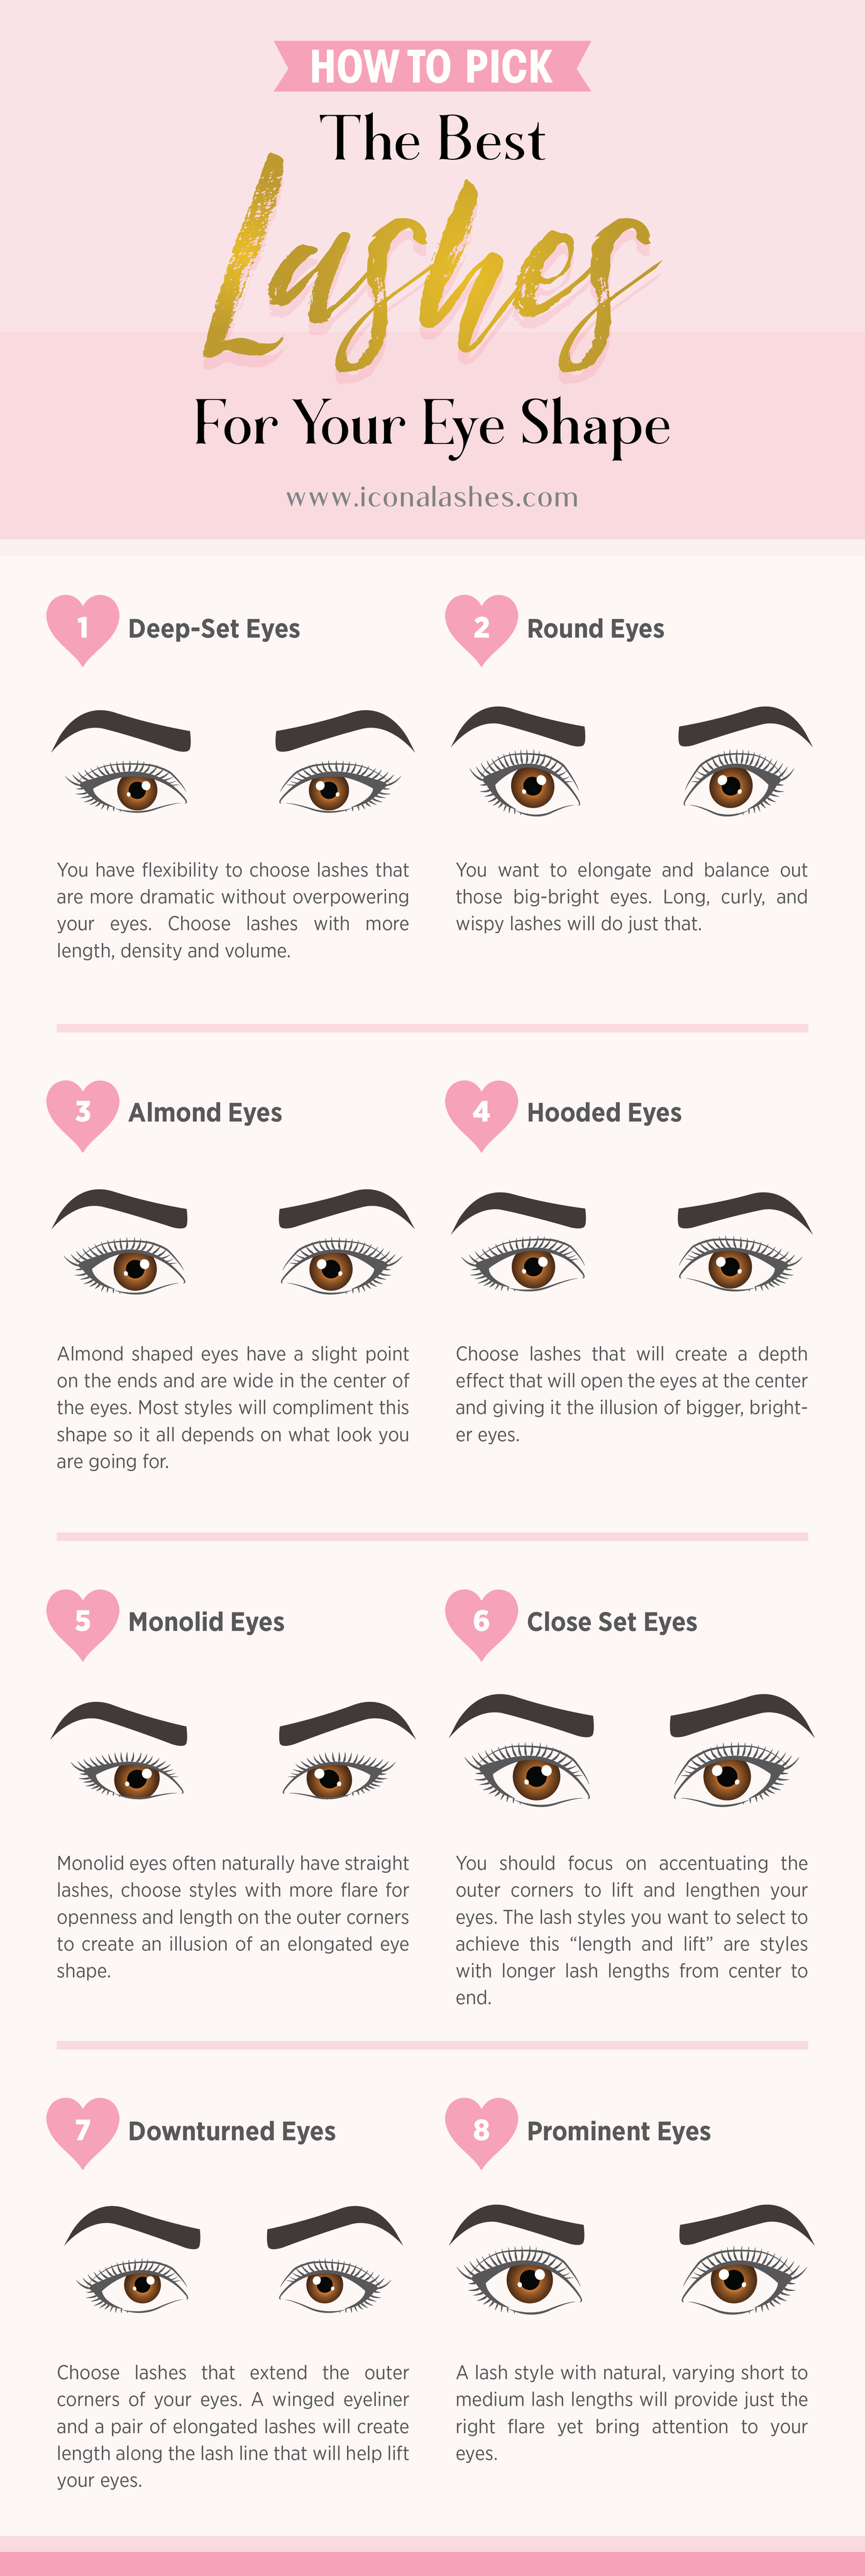 Photo of How To Pick The Best Lashes For Your Eye Shape